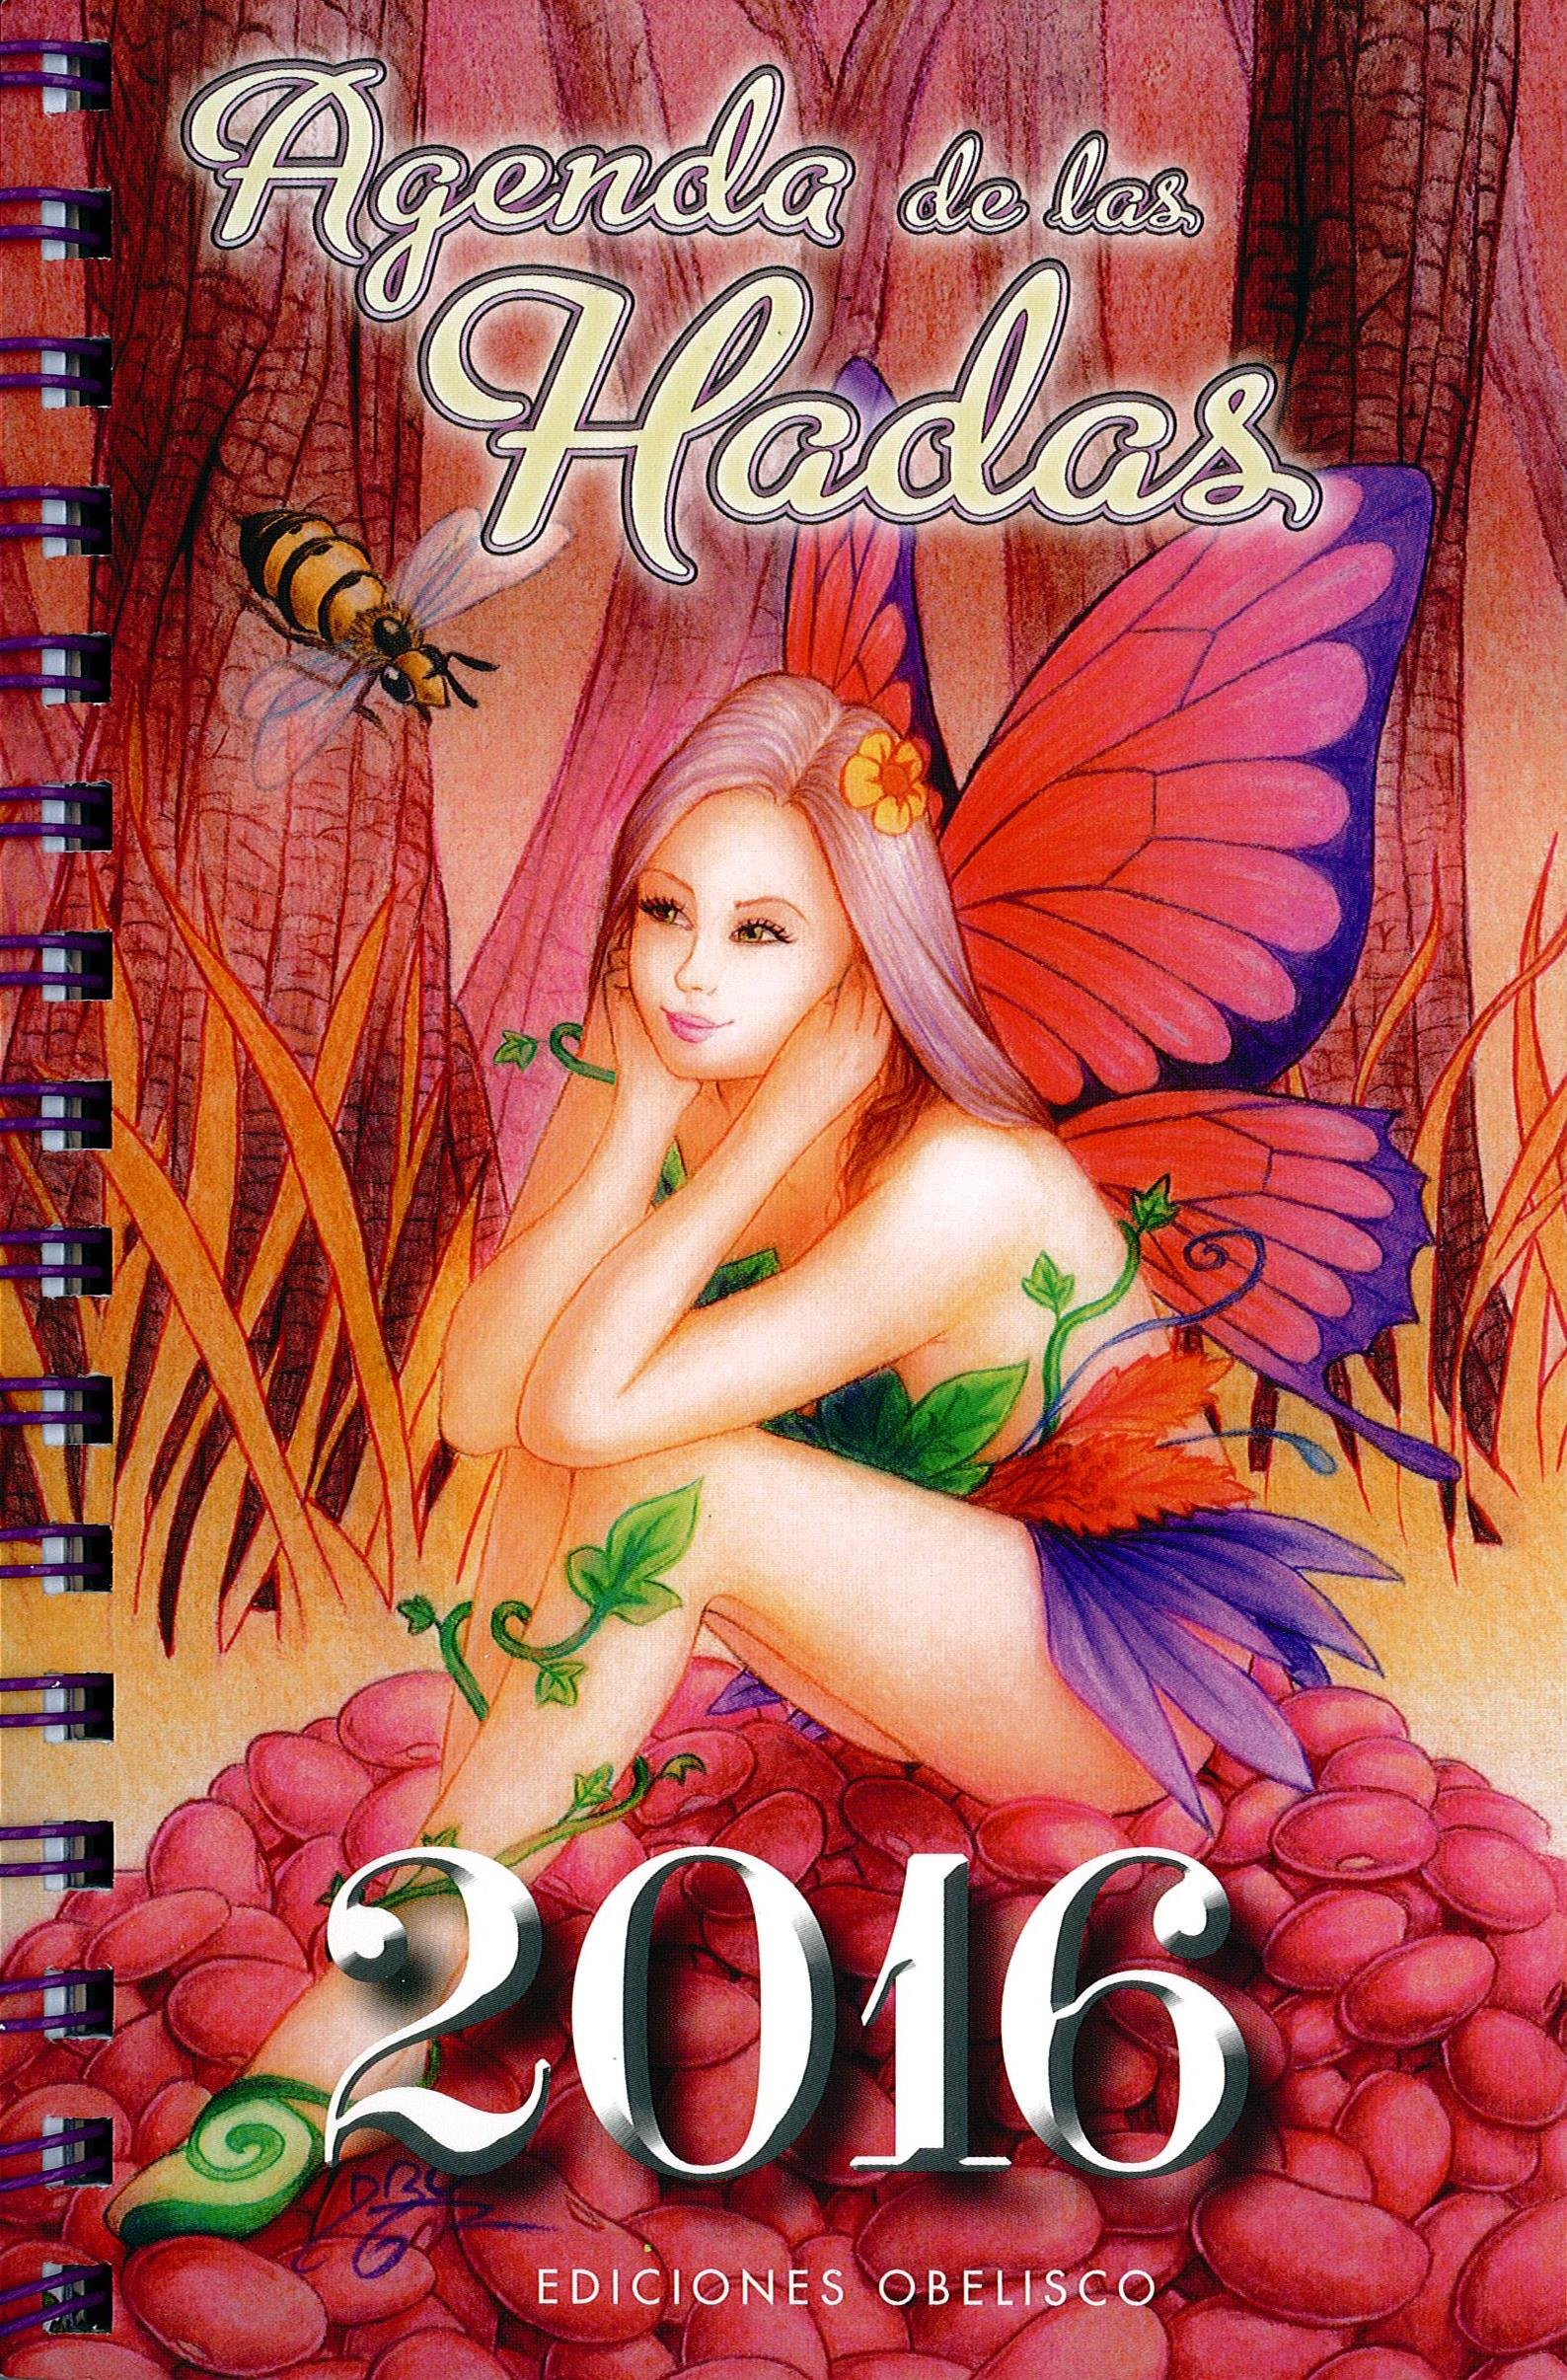 Agenda de las hadas 2016 (Spanish Edition): Various Authors ...